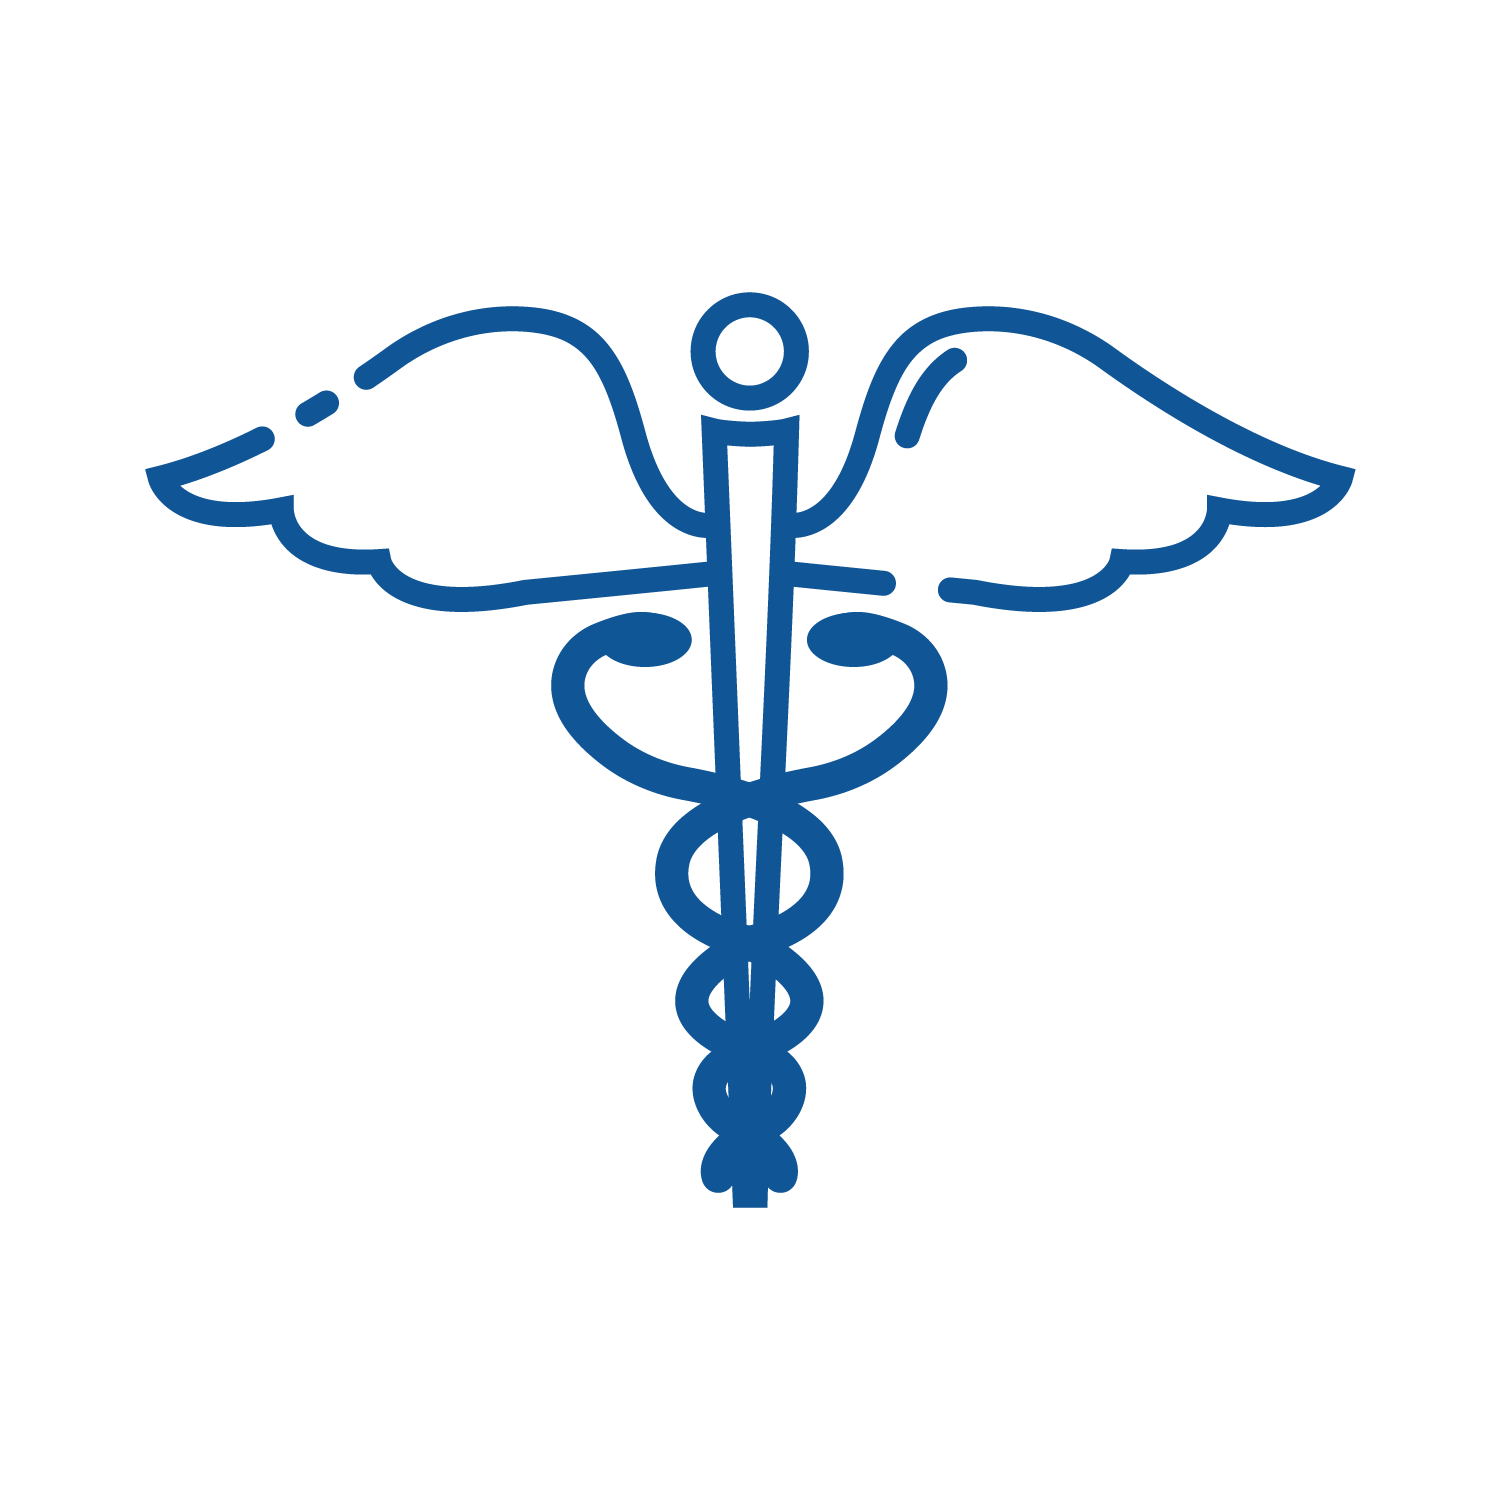 medical-icons-brumark-02.png